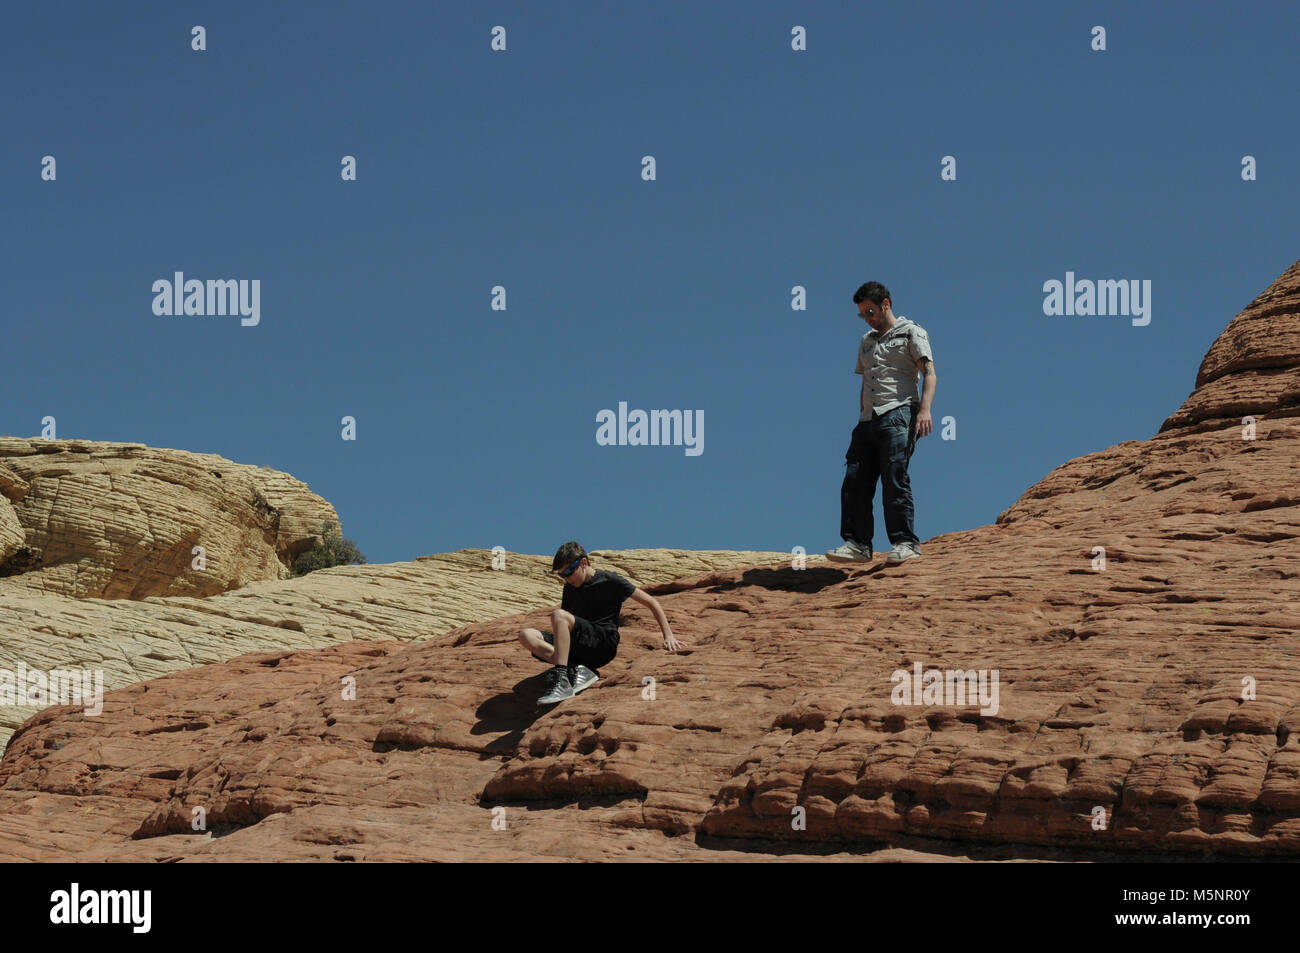 People hiking in Red Rock Canyon, Nevada, USA on a bright sunny day Stock Photo